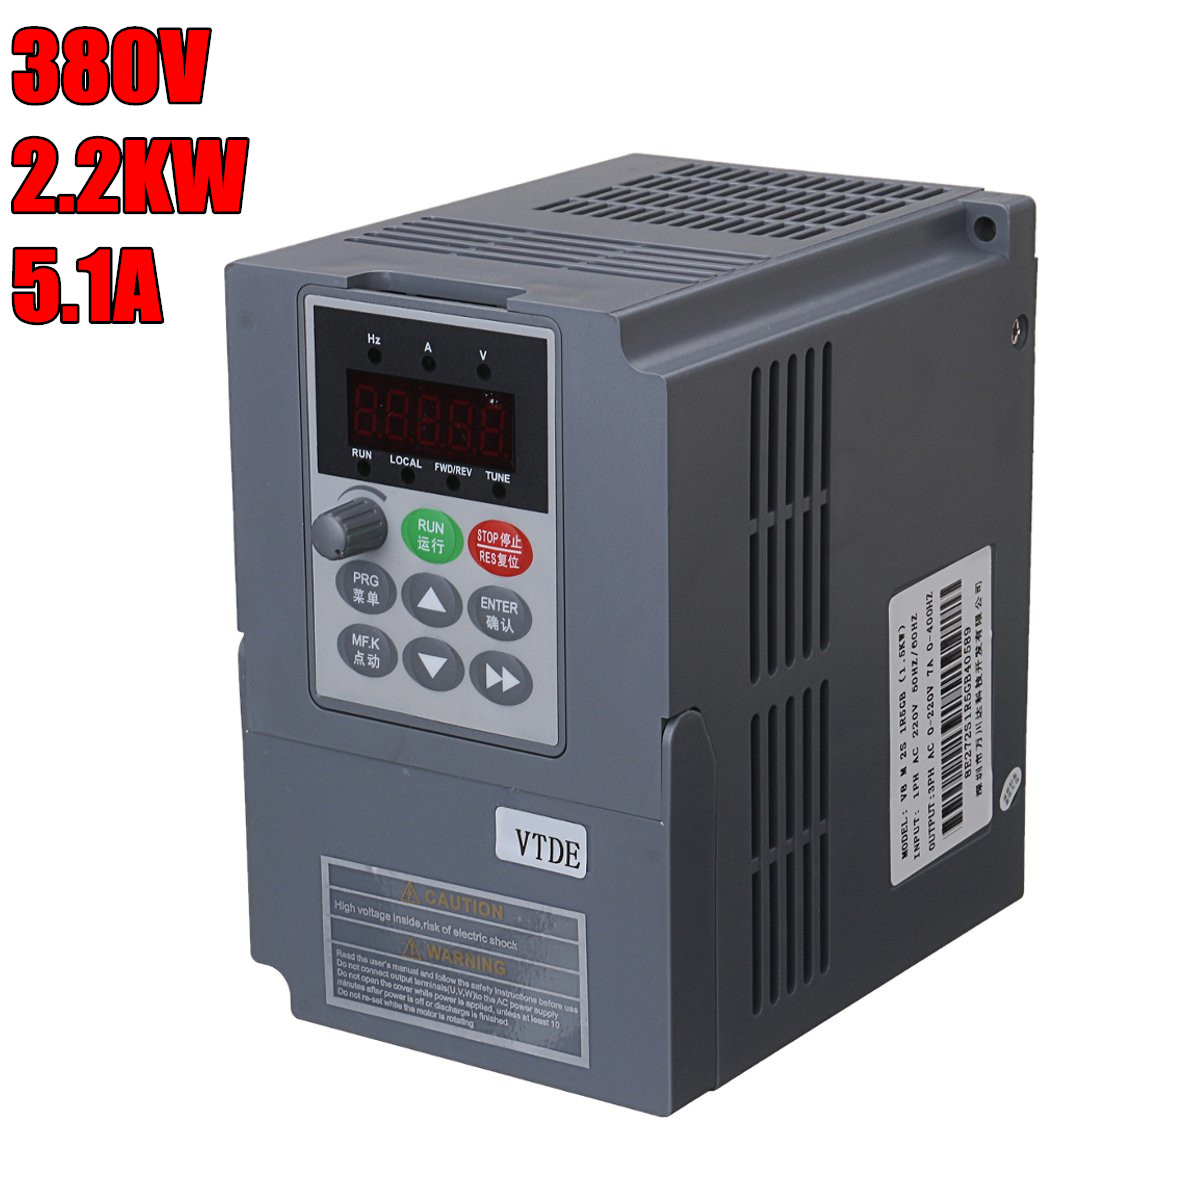 CNC Spindle motor speed control 380v 2.2kw VFD Variable Frequency Drive VFD 3PH Input 3PH frequency Drive inverter for motor new atv312hu75n4 vfd inverter input 3ph 380v 17a 7 5kw